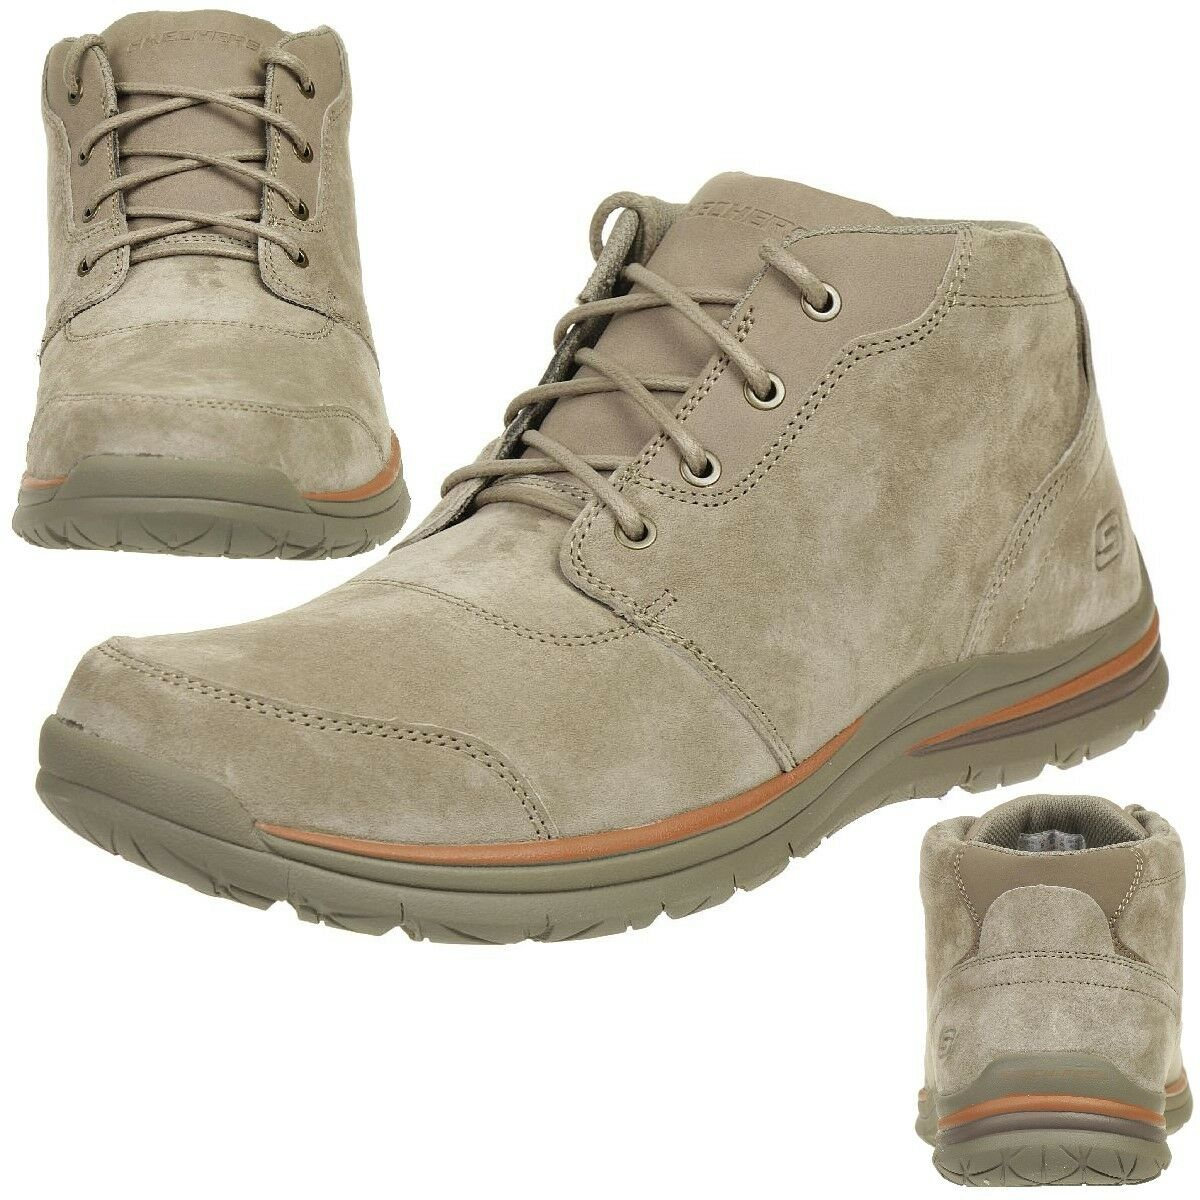 Venta de liquidación de temporada Skechers superior 2.0 brunco botas outdoor zapatos cassic fit tpe